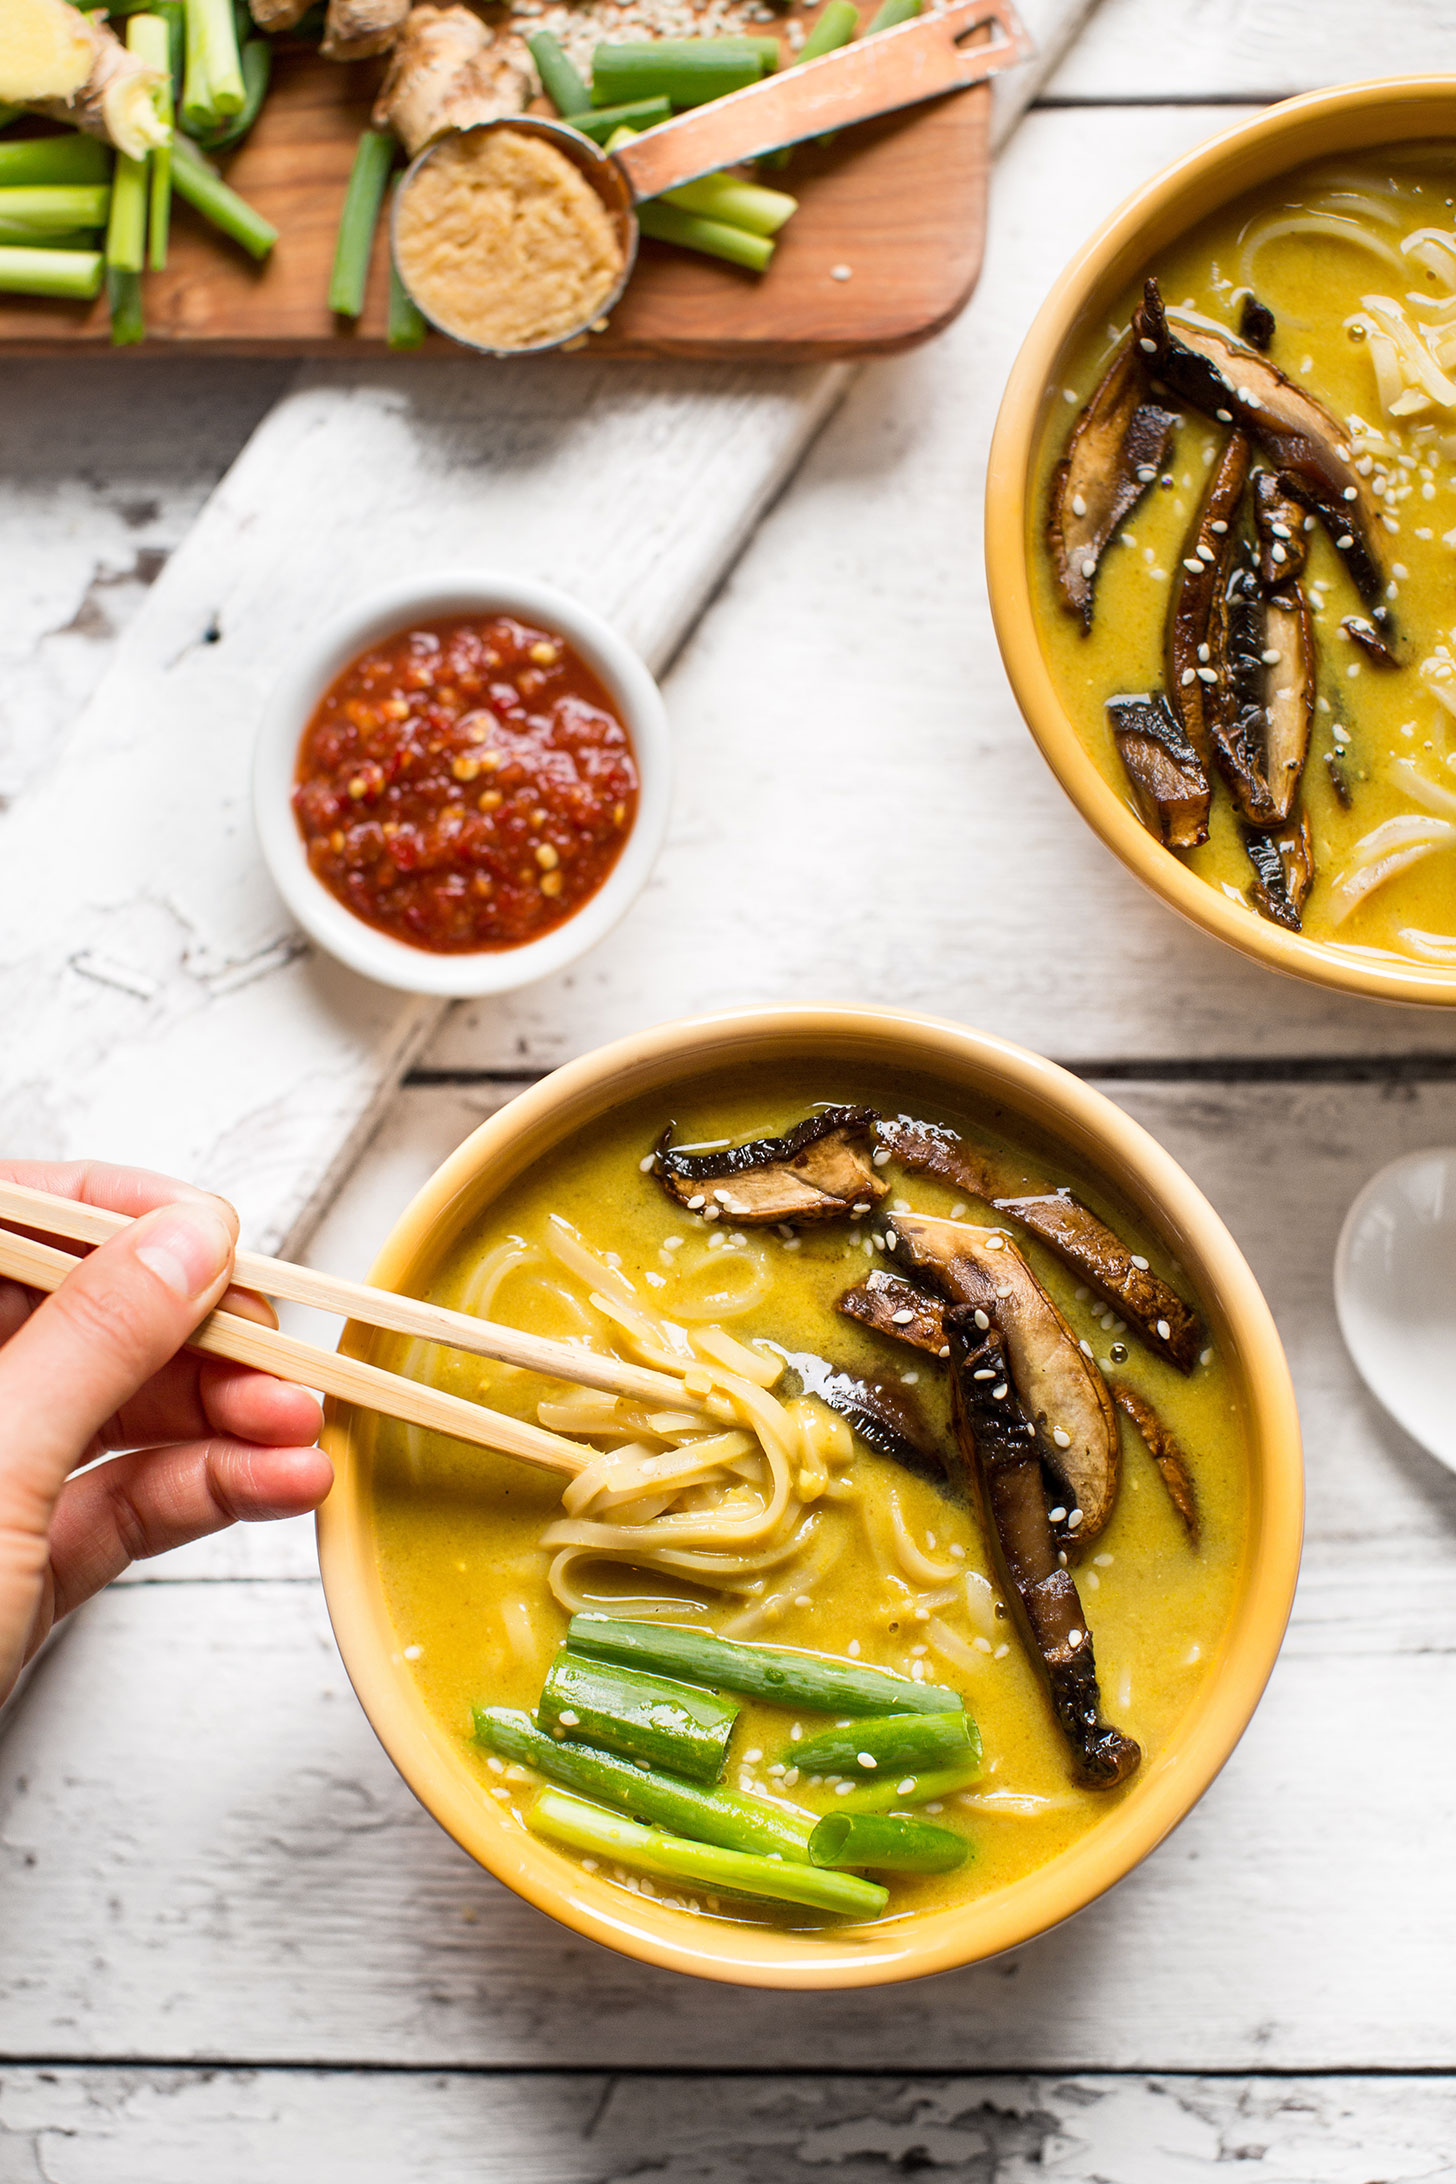 Using chopsticks to grab a bite of gluten-free vegan Coconut Curry Ramen